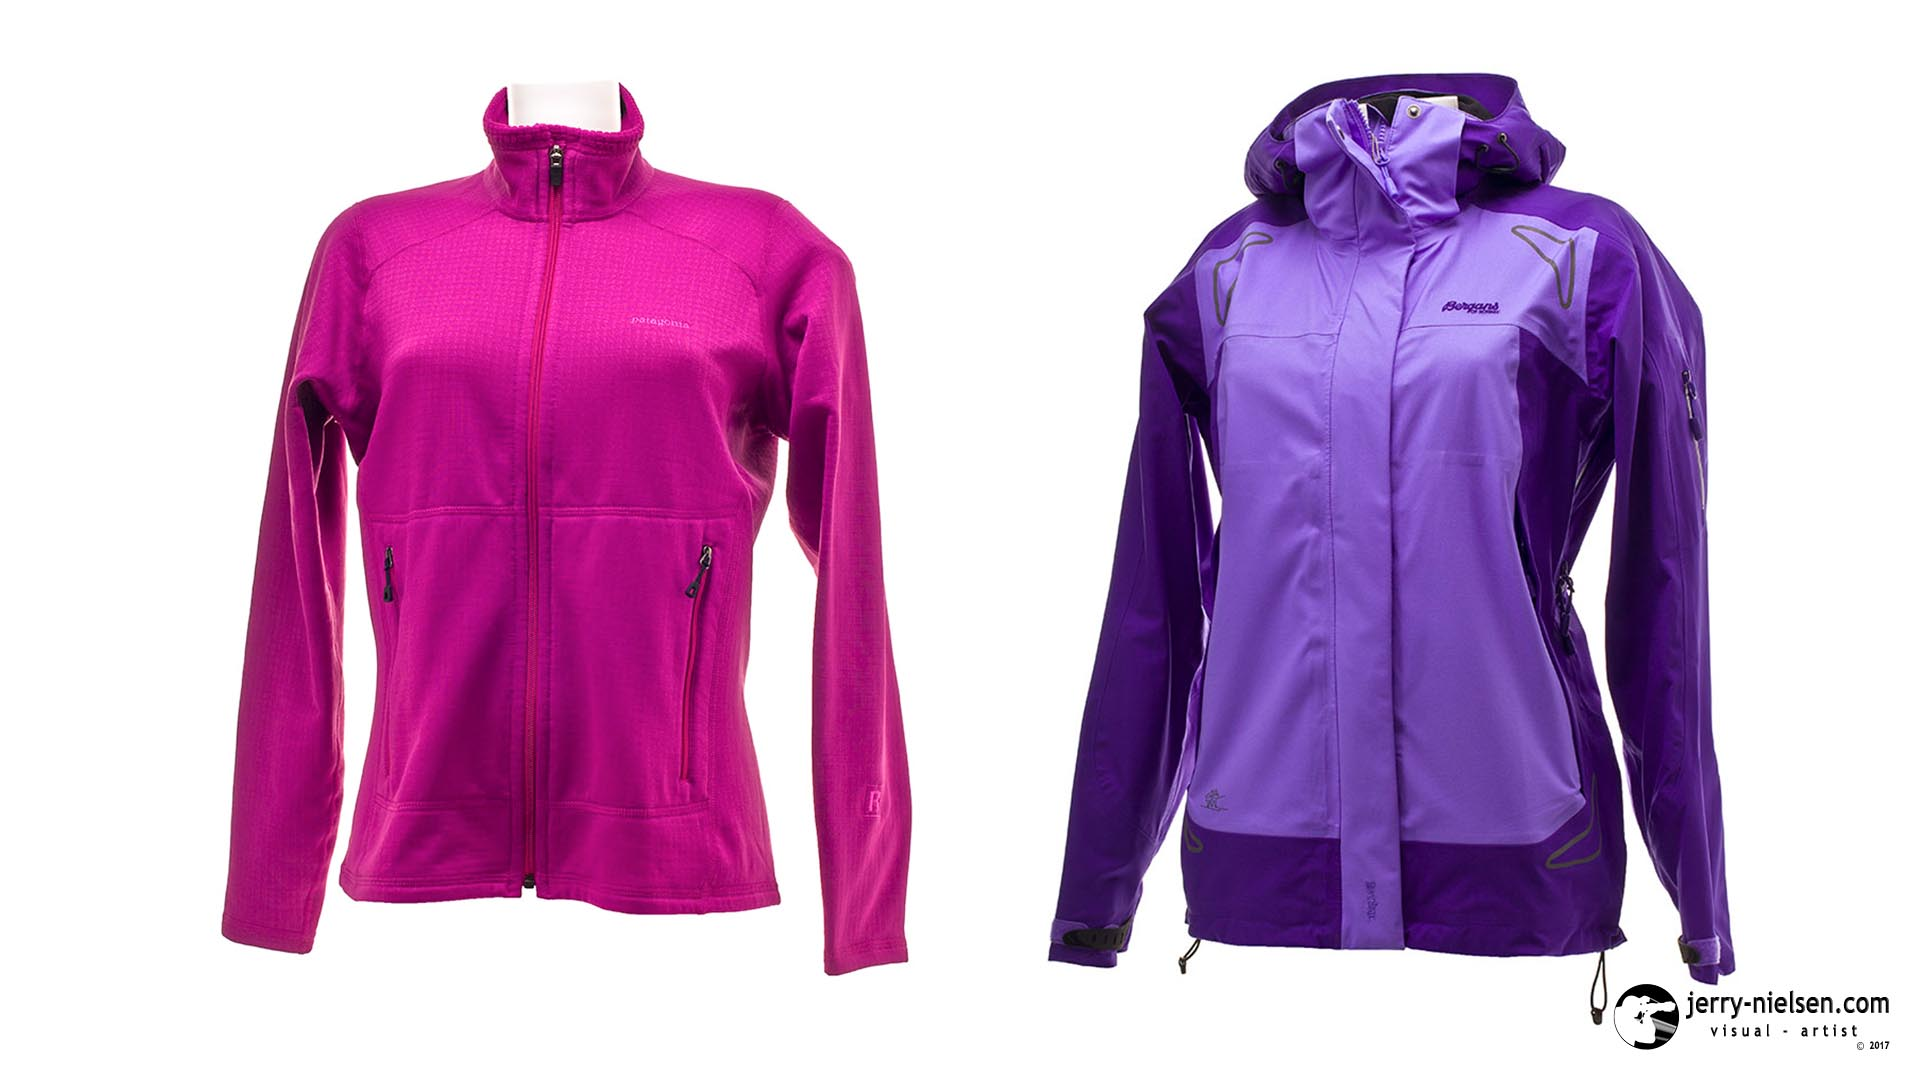 Female Patagonia Fleece and Bergans Jacket